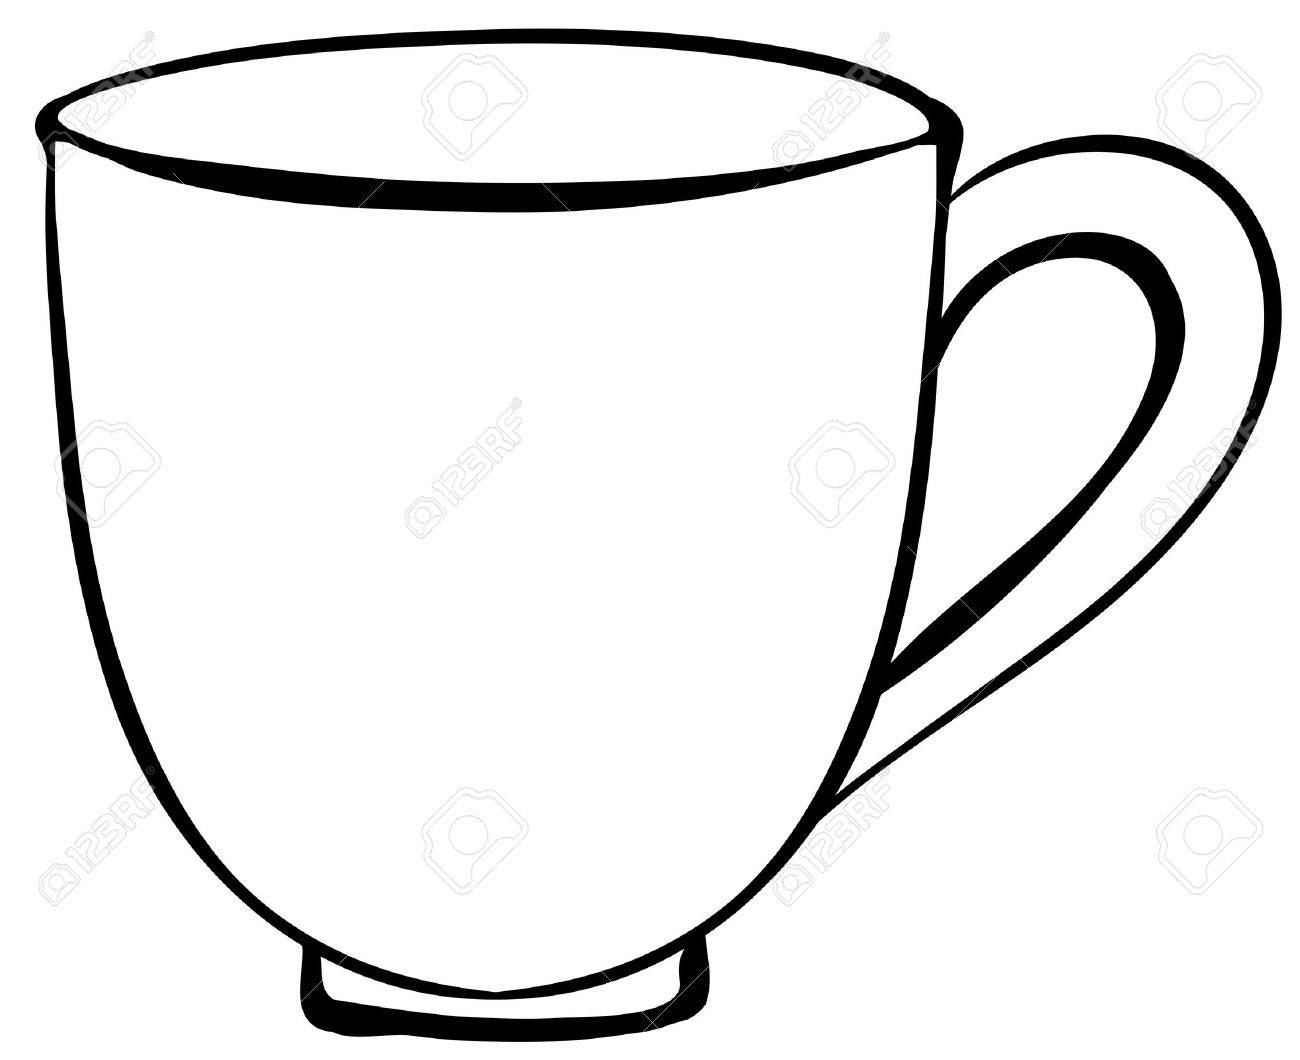 1300x1060 Closeup Plain Design Of Coffee Cup Royalty Free Cliparts, Vectors